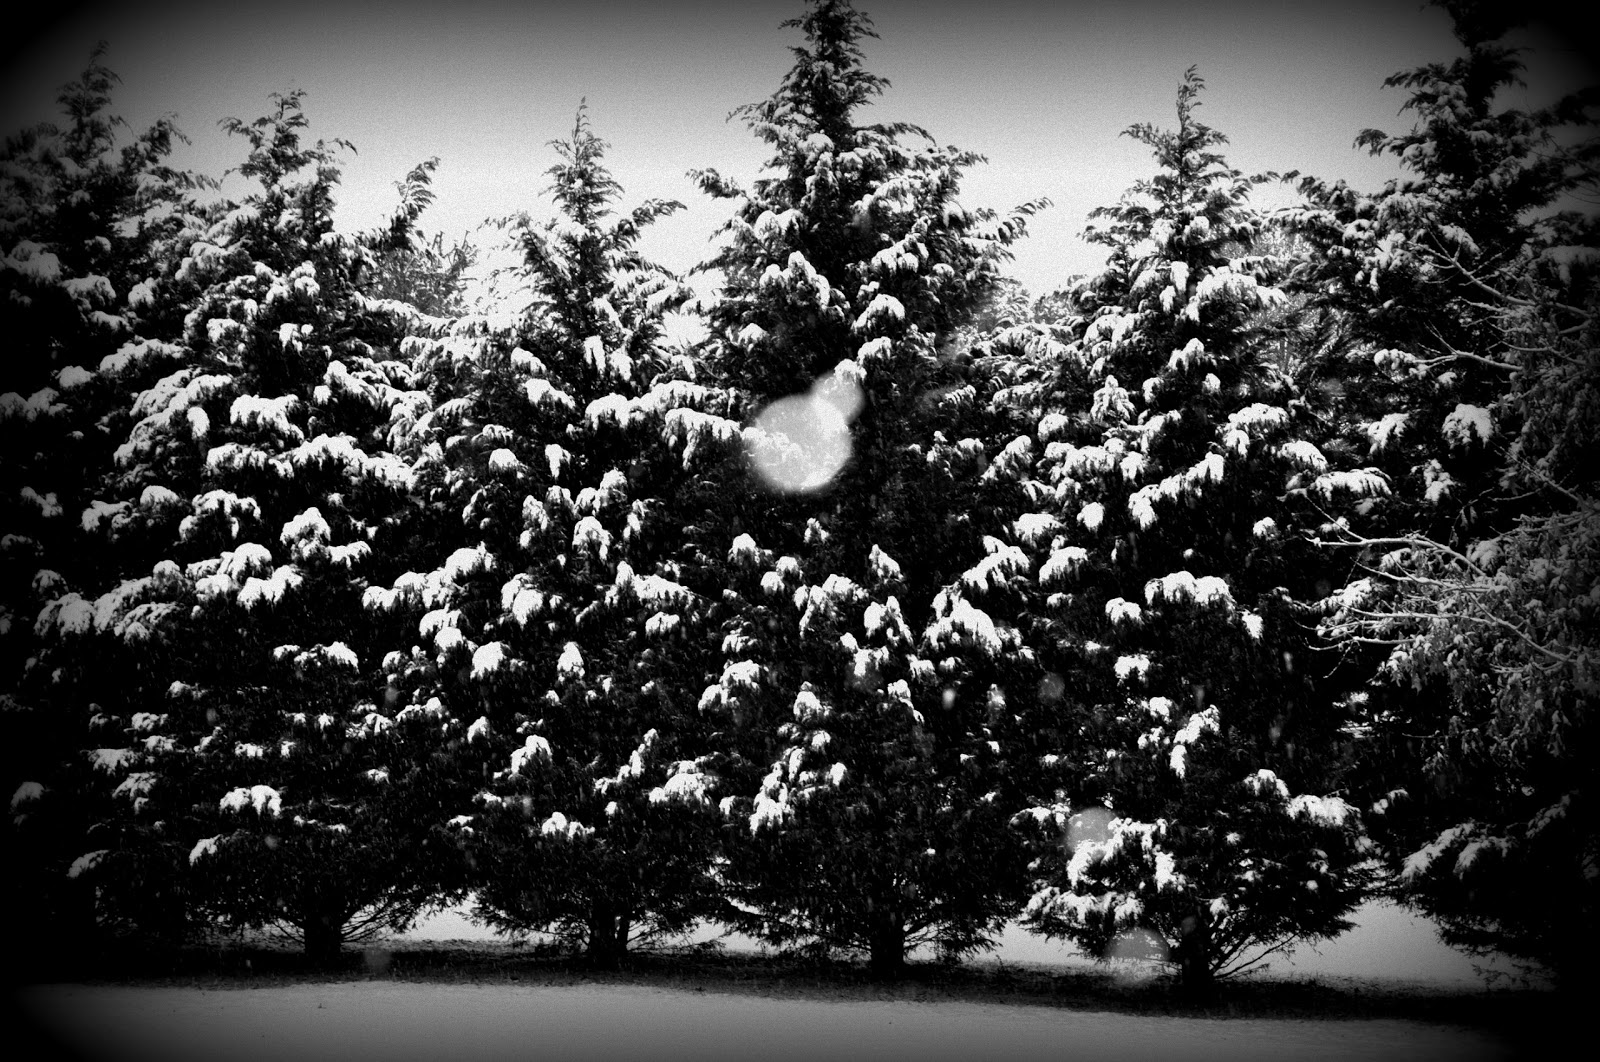 christmas pictures black and white - Black And White Christmas